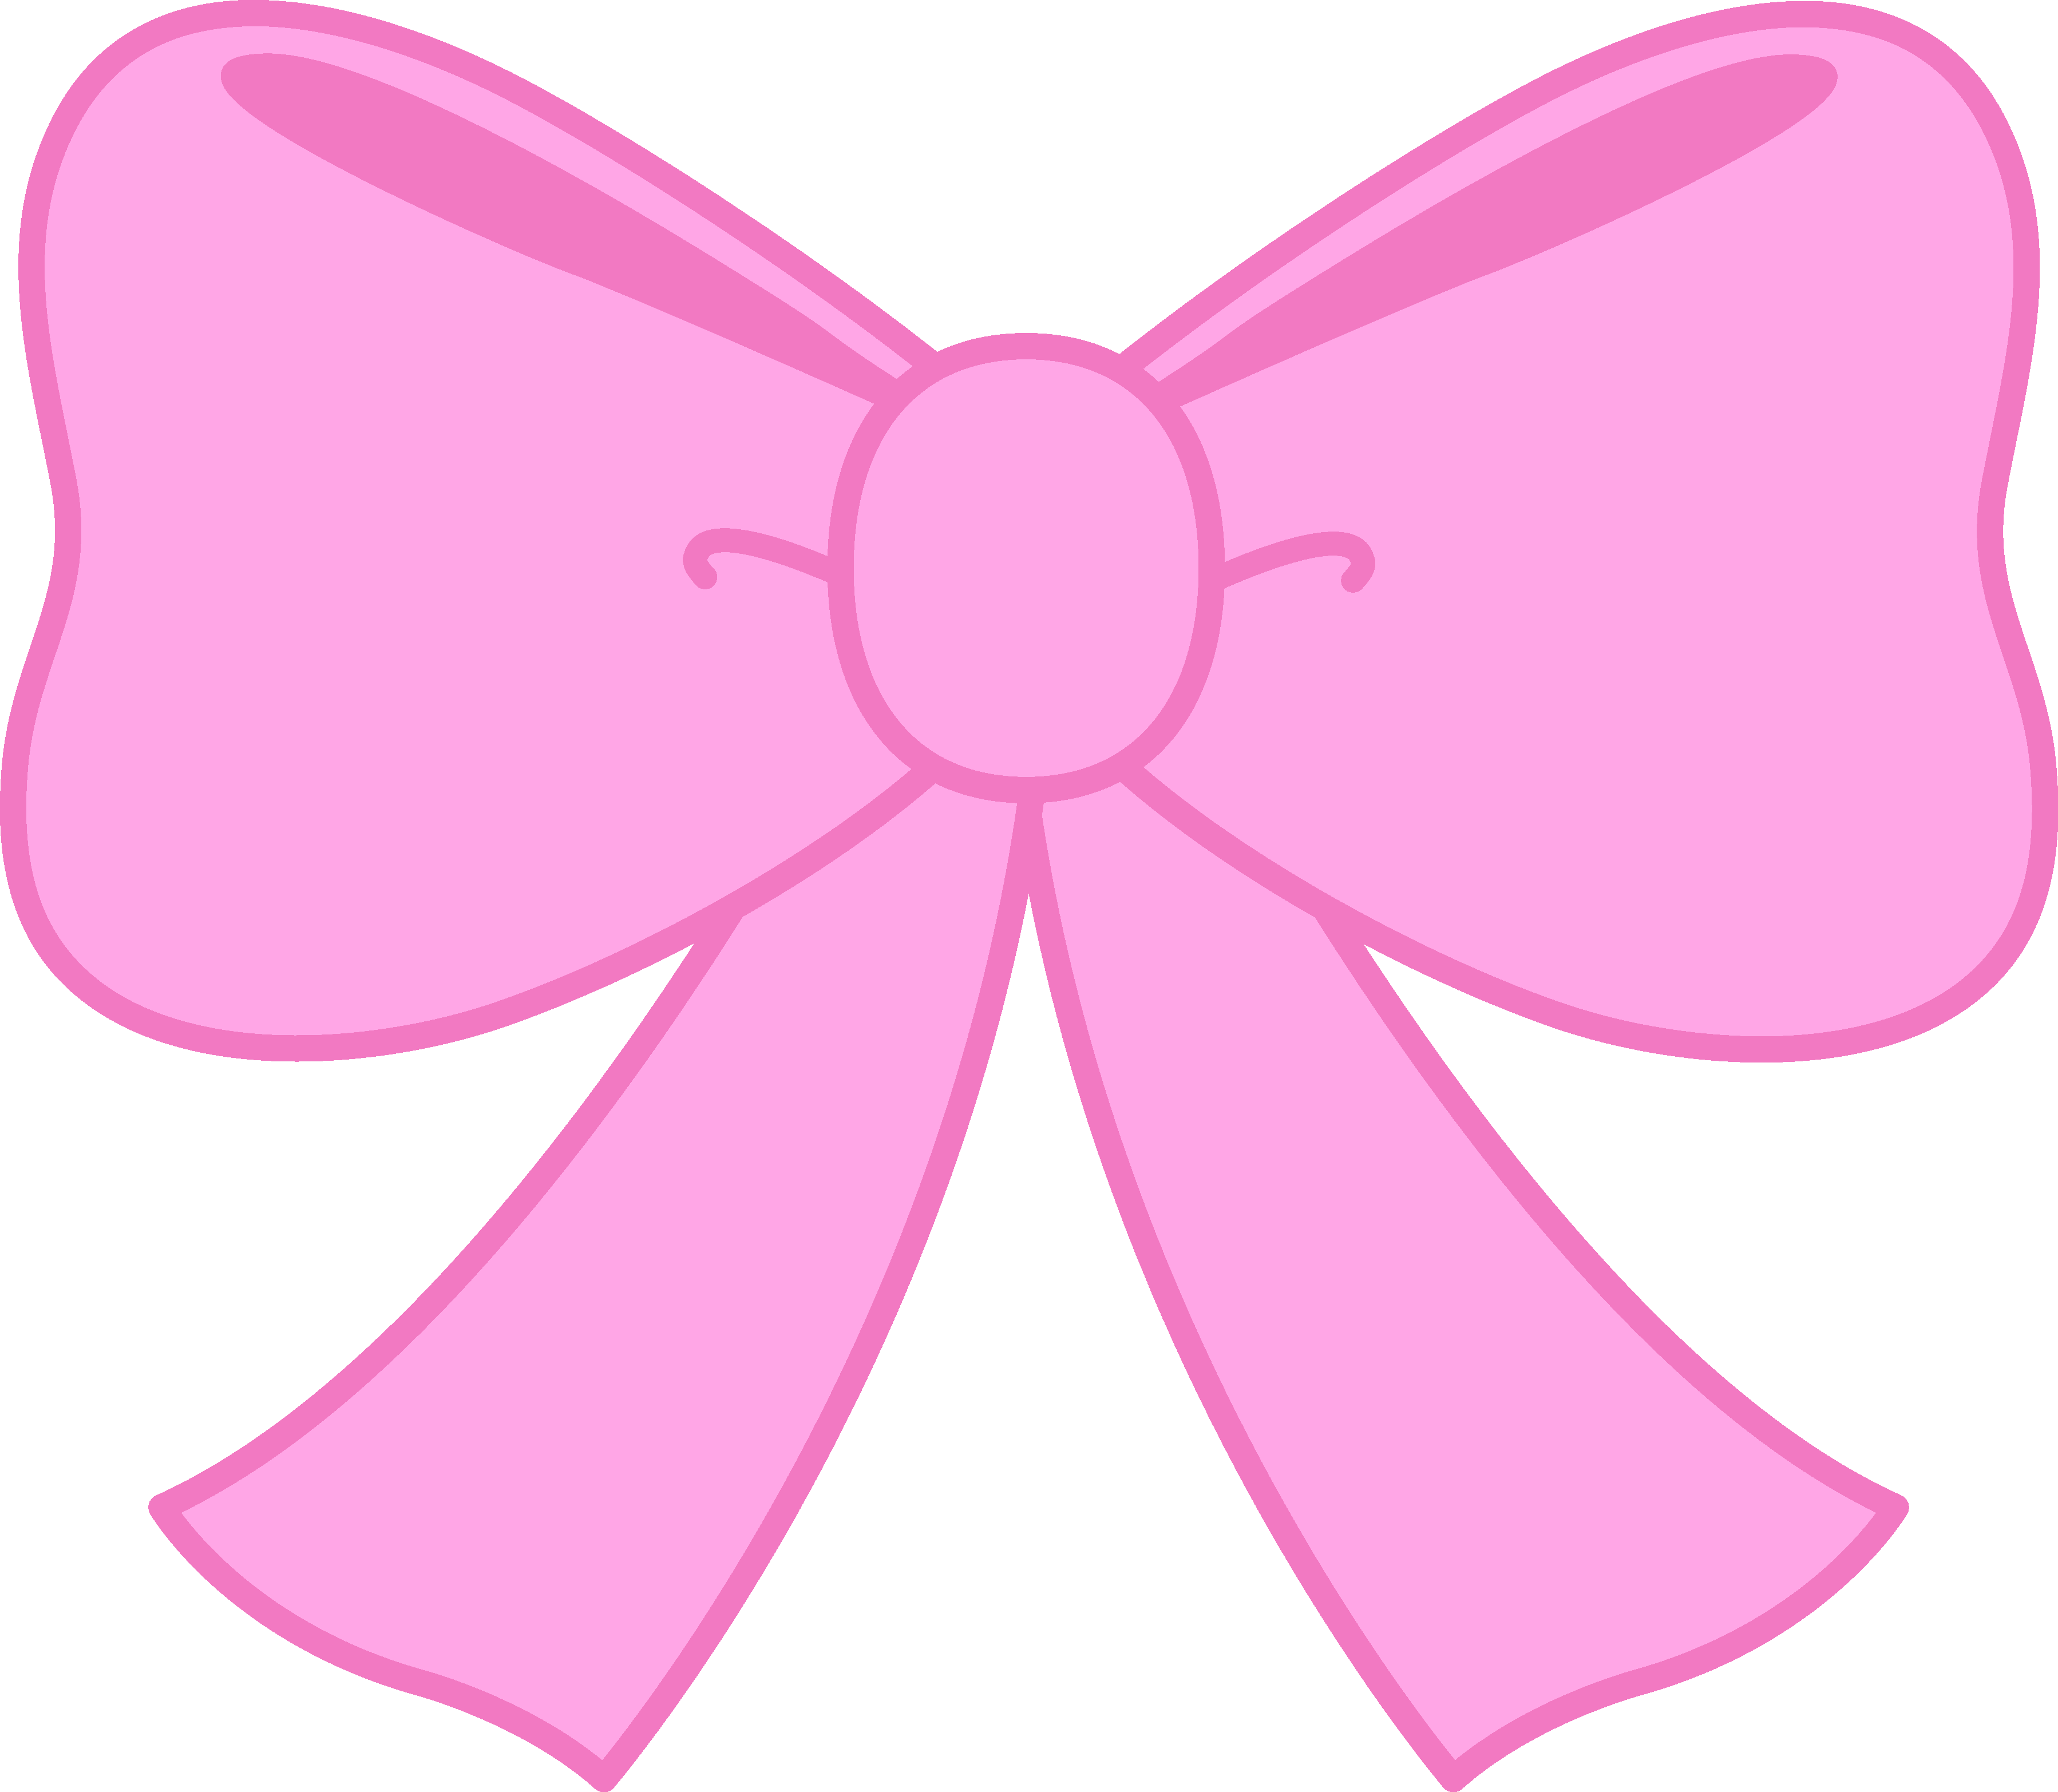 Clipart bows png black and white stock Free Free Bow Clipart, Download Free Clip Art, Free Clip Art on ... png black and white stock